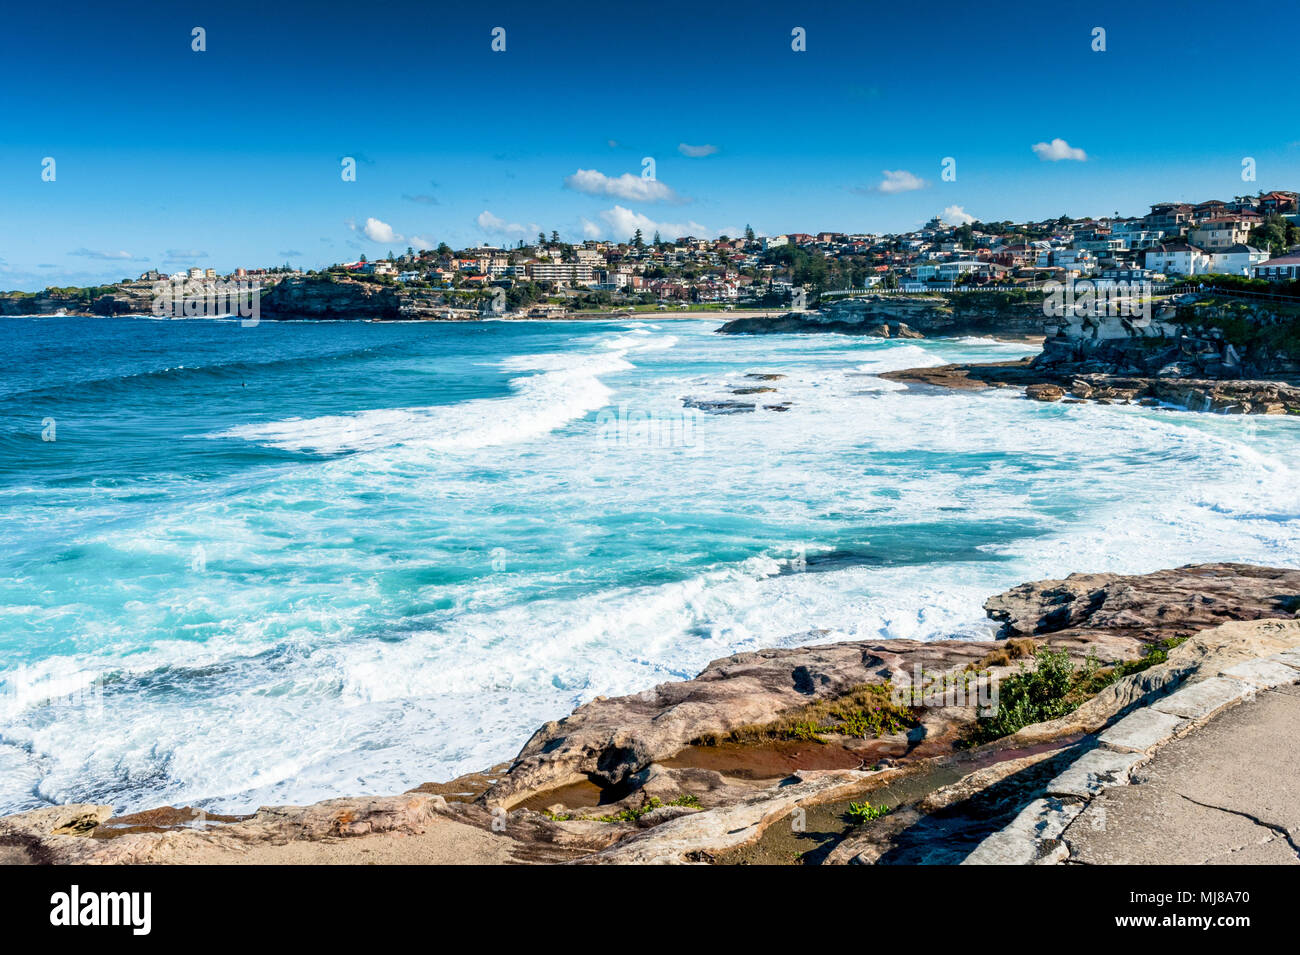 The views of the stunning coastline along the famous Coogee beach walk between Coogee and Bondi Beach ,Sydney, New South Wales , Australia. Stock Photo